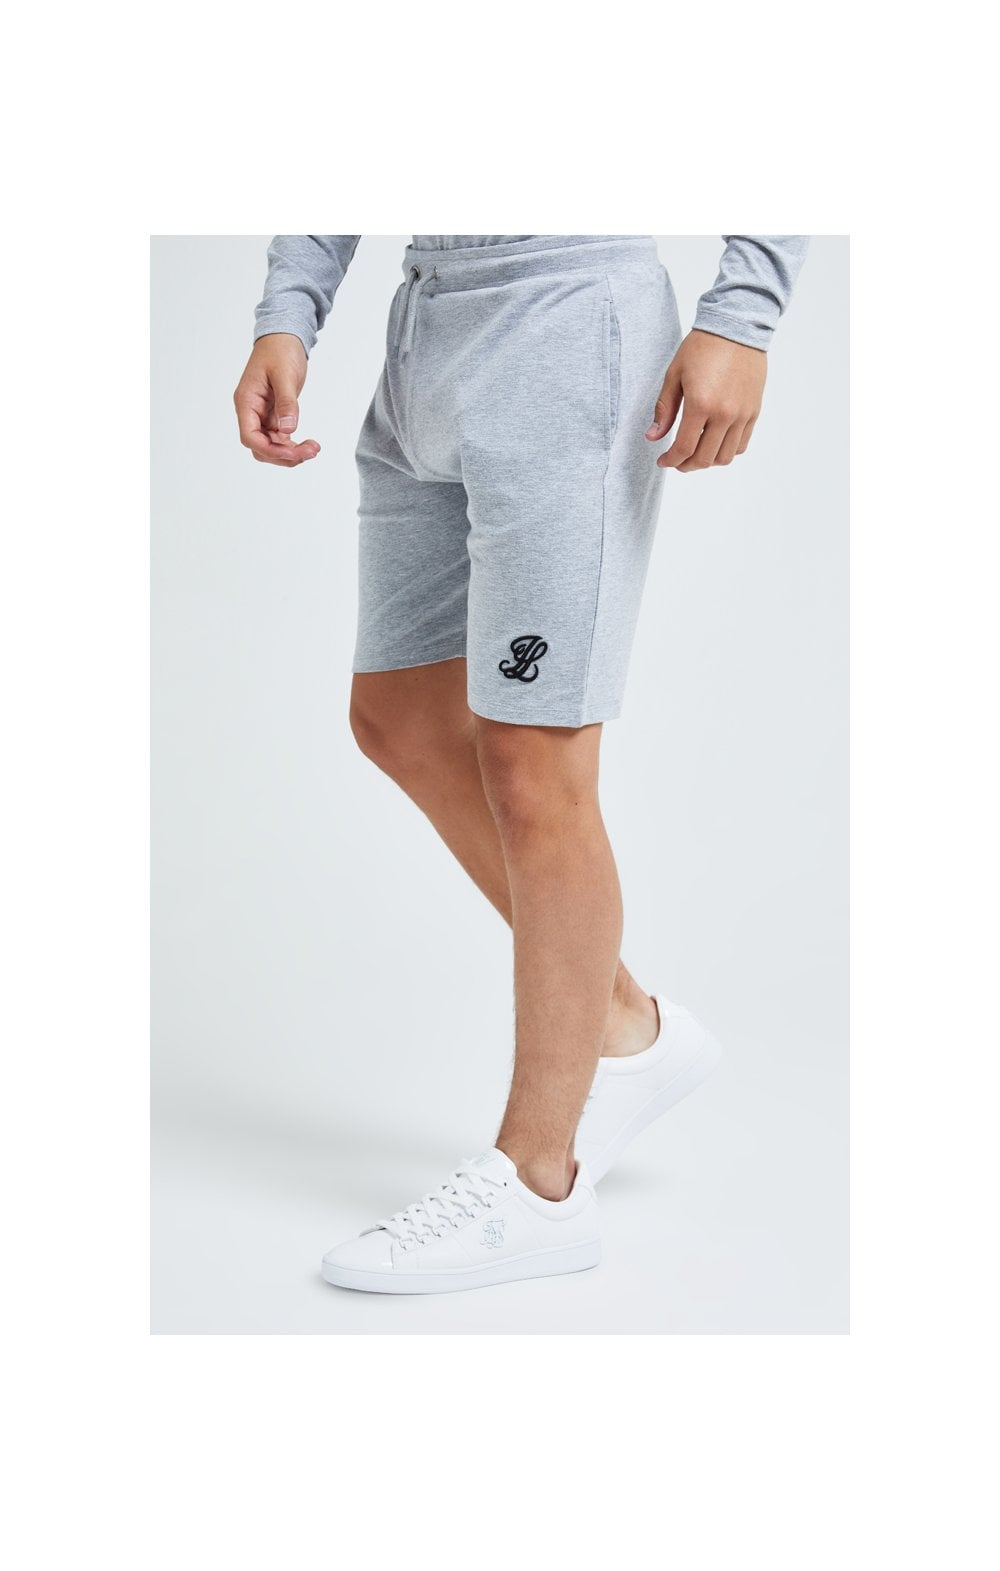 Illusive London Core Jersey Shorts - Grey Marl (1)